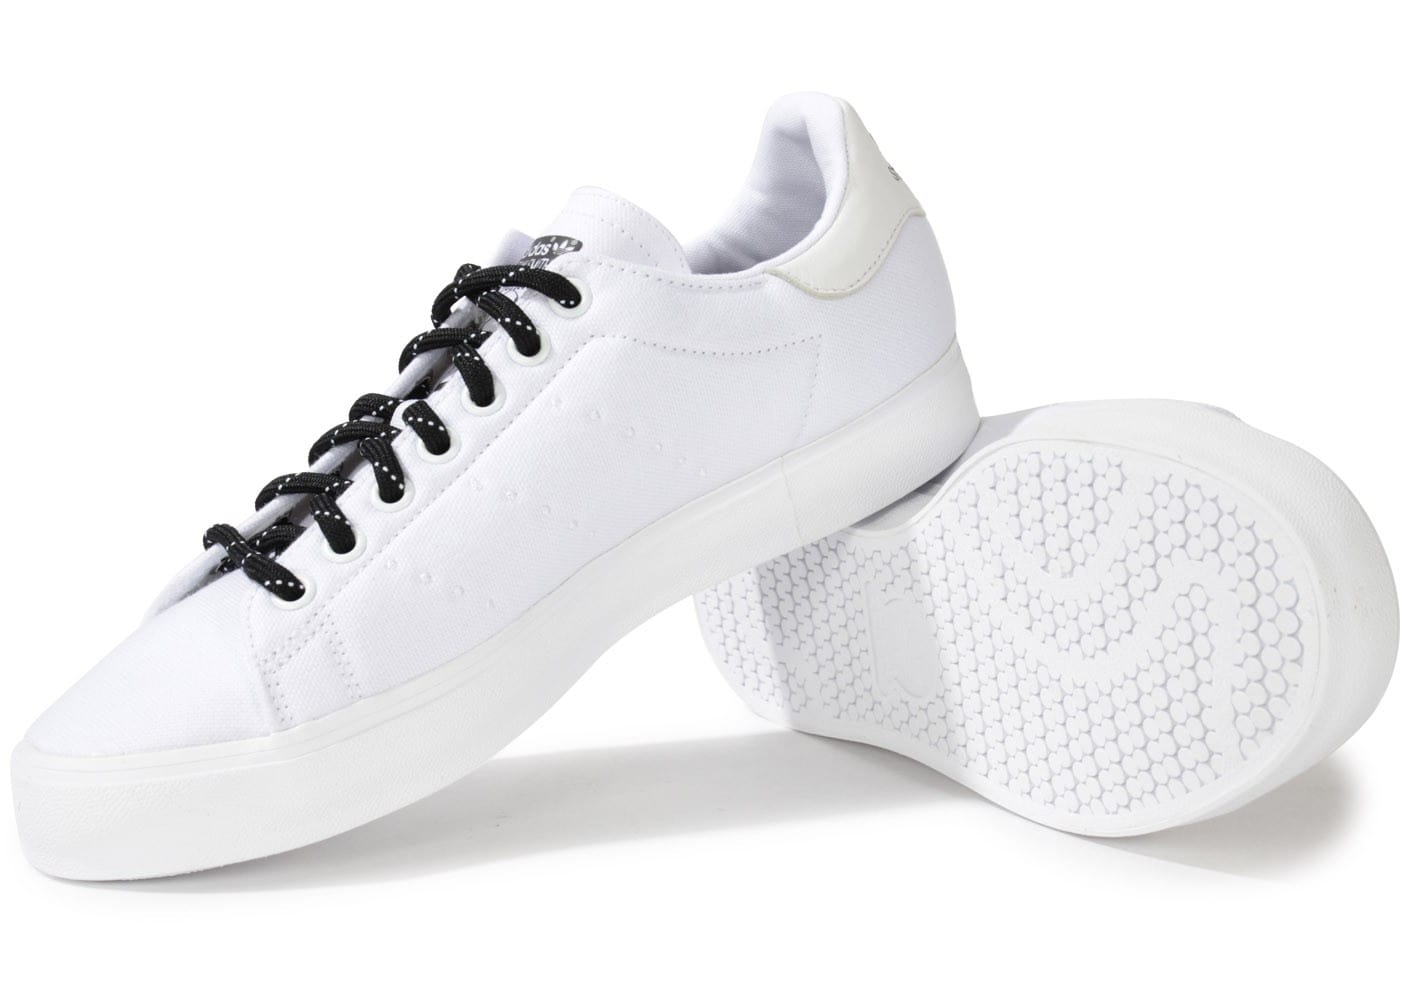 ... Chaussures adidas Stan Smith Toile Blanche vue intérieure ...